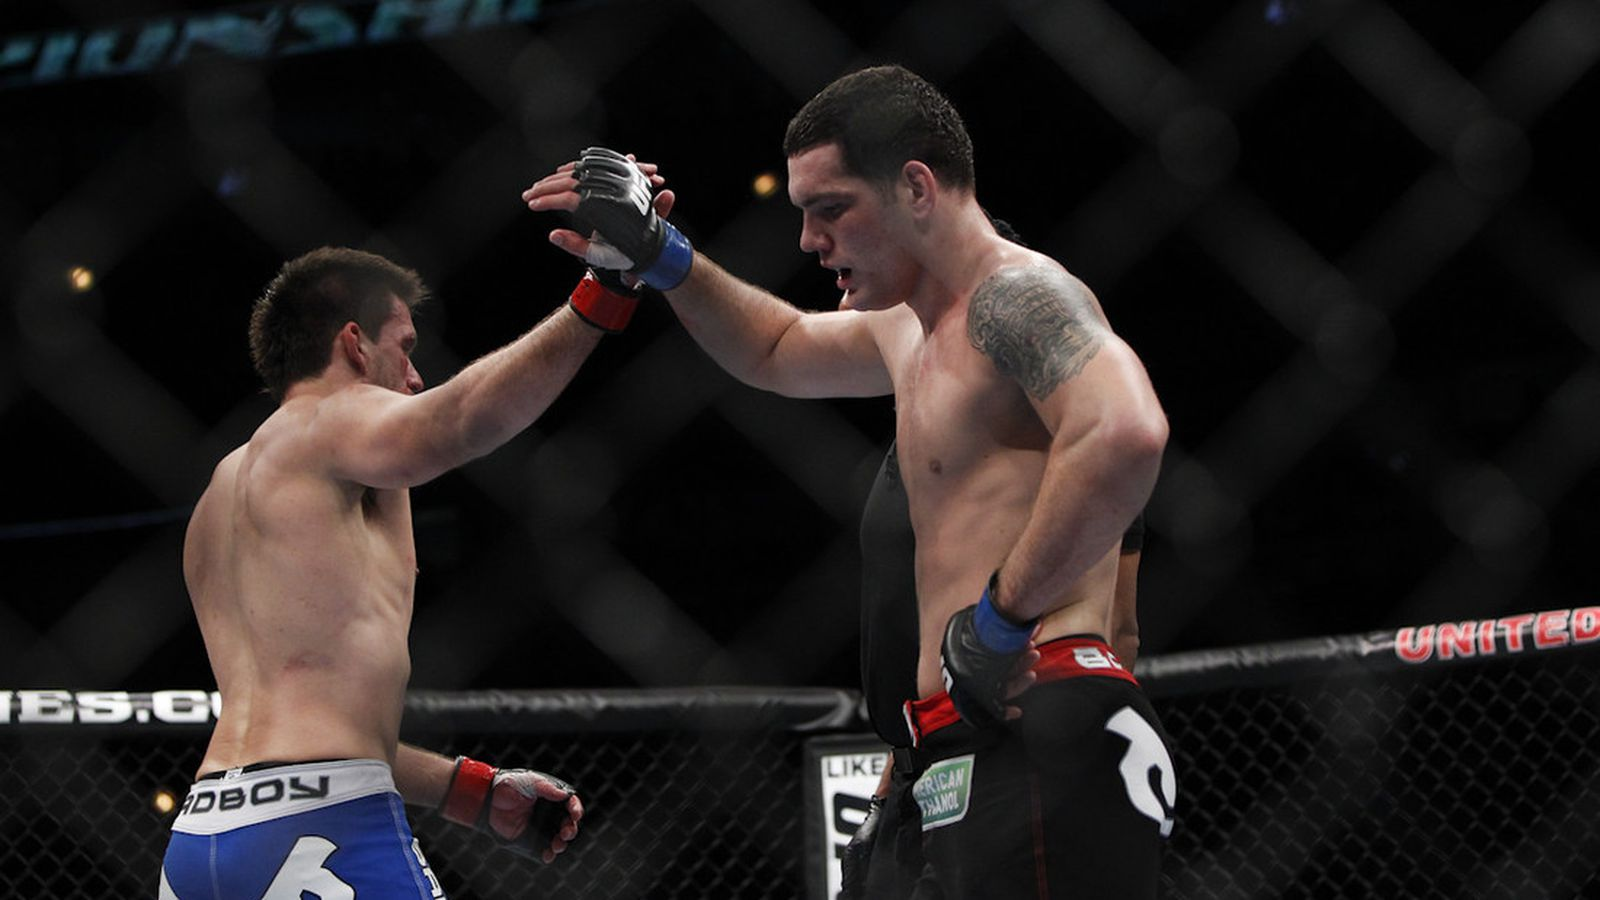 Chris Weidman Wallpaper Chris Weidman's Body Was